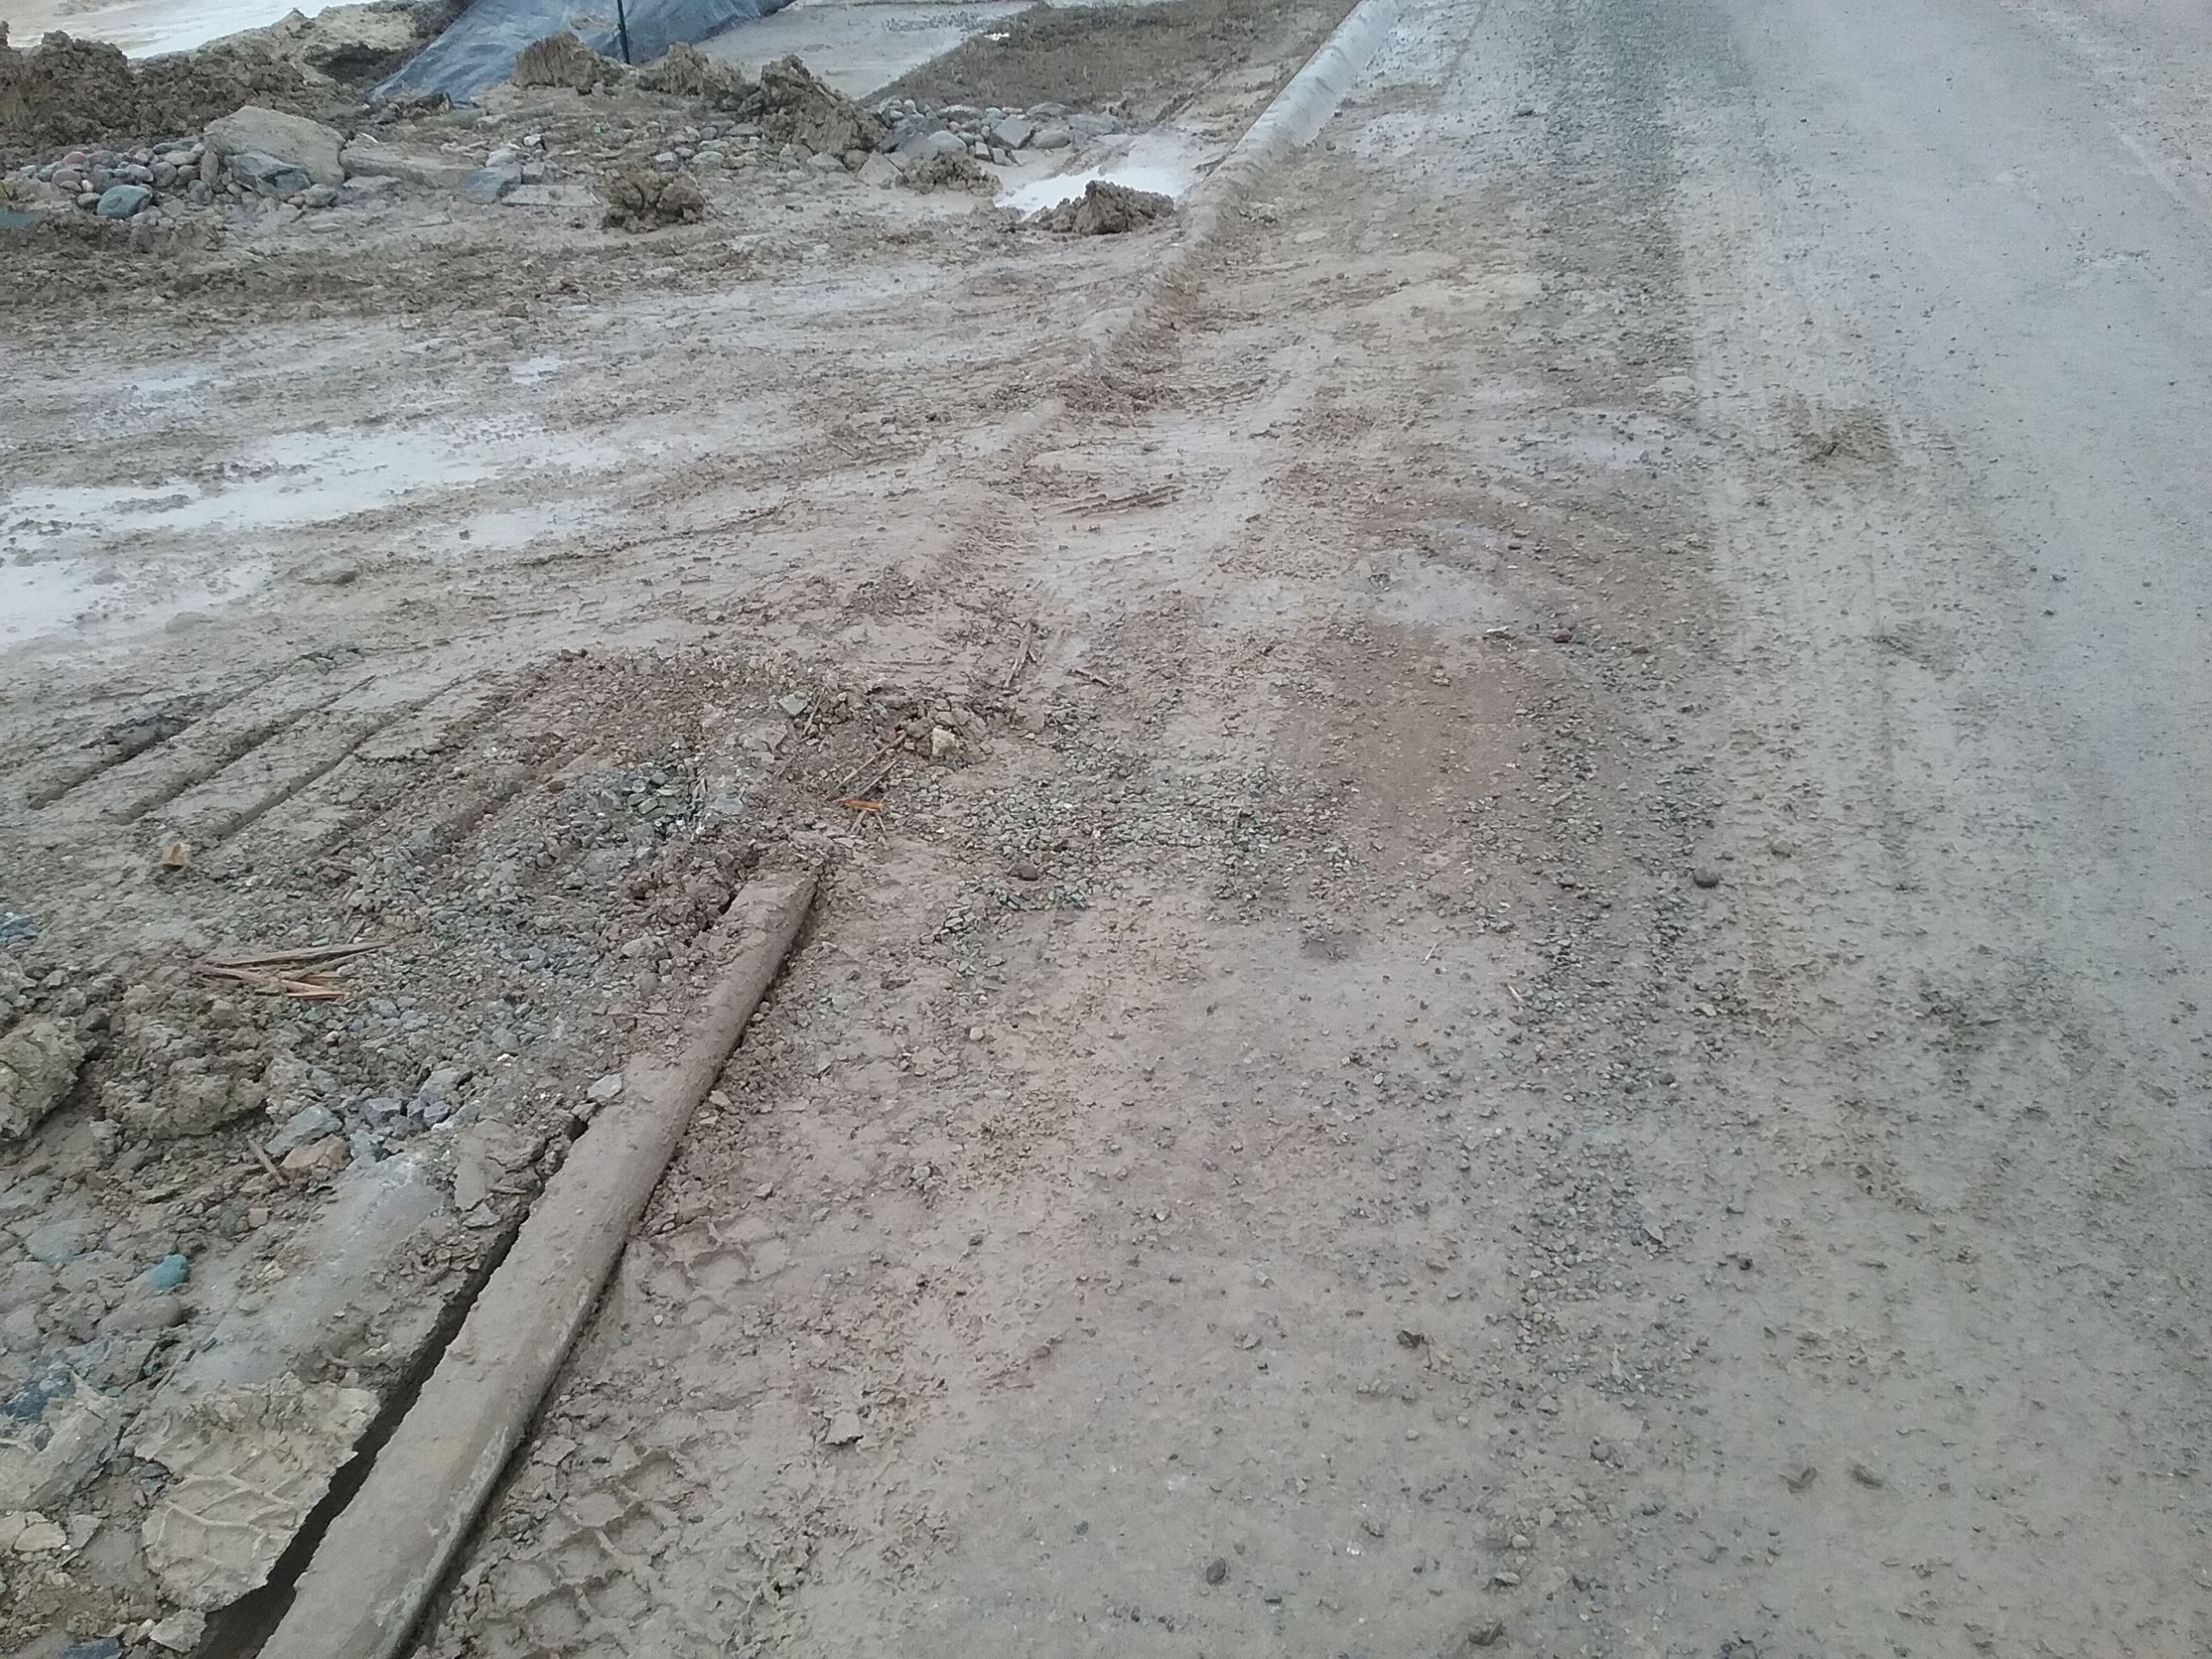 Sediment and rock being tracking into roadway at construction site